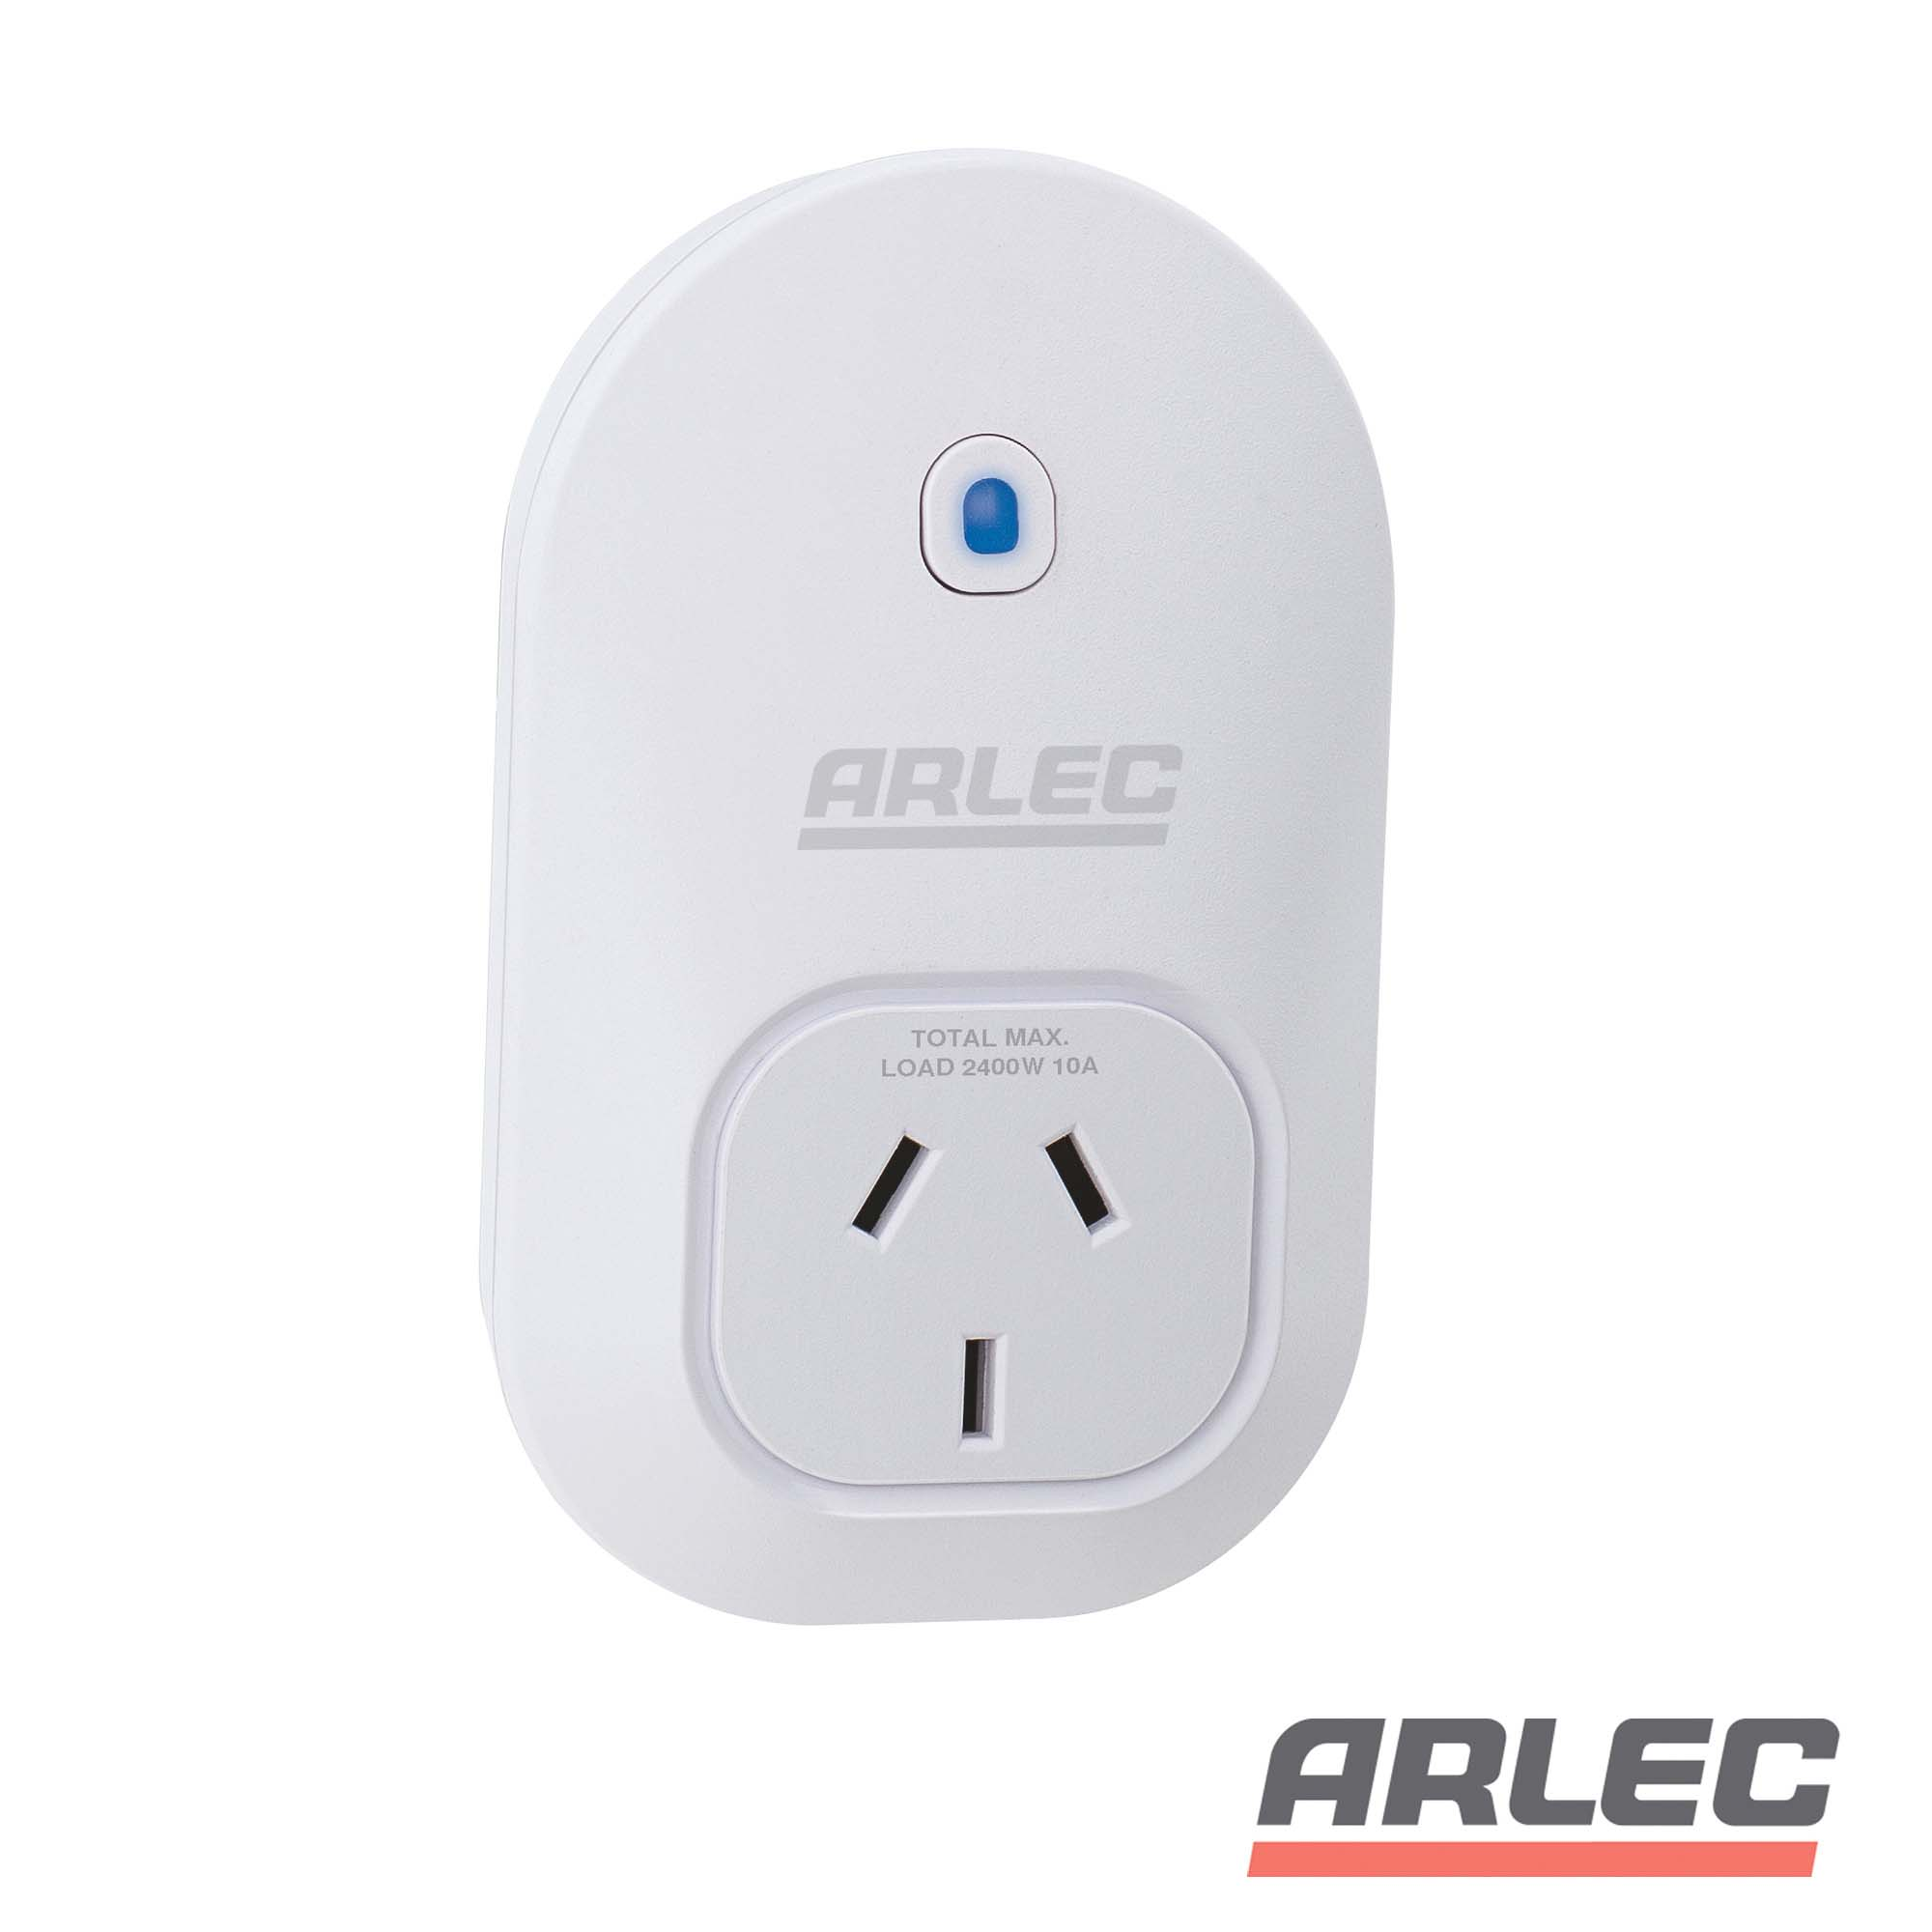 Arlec timer switch instructions